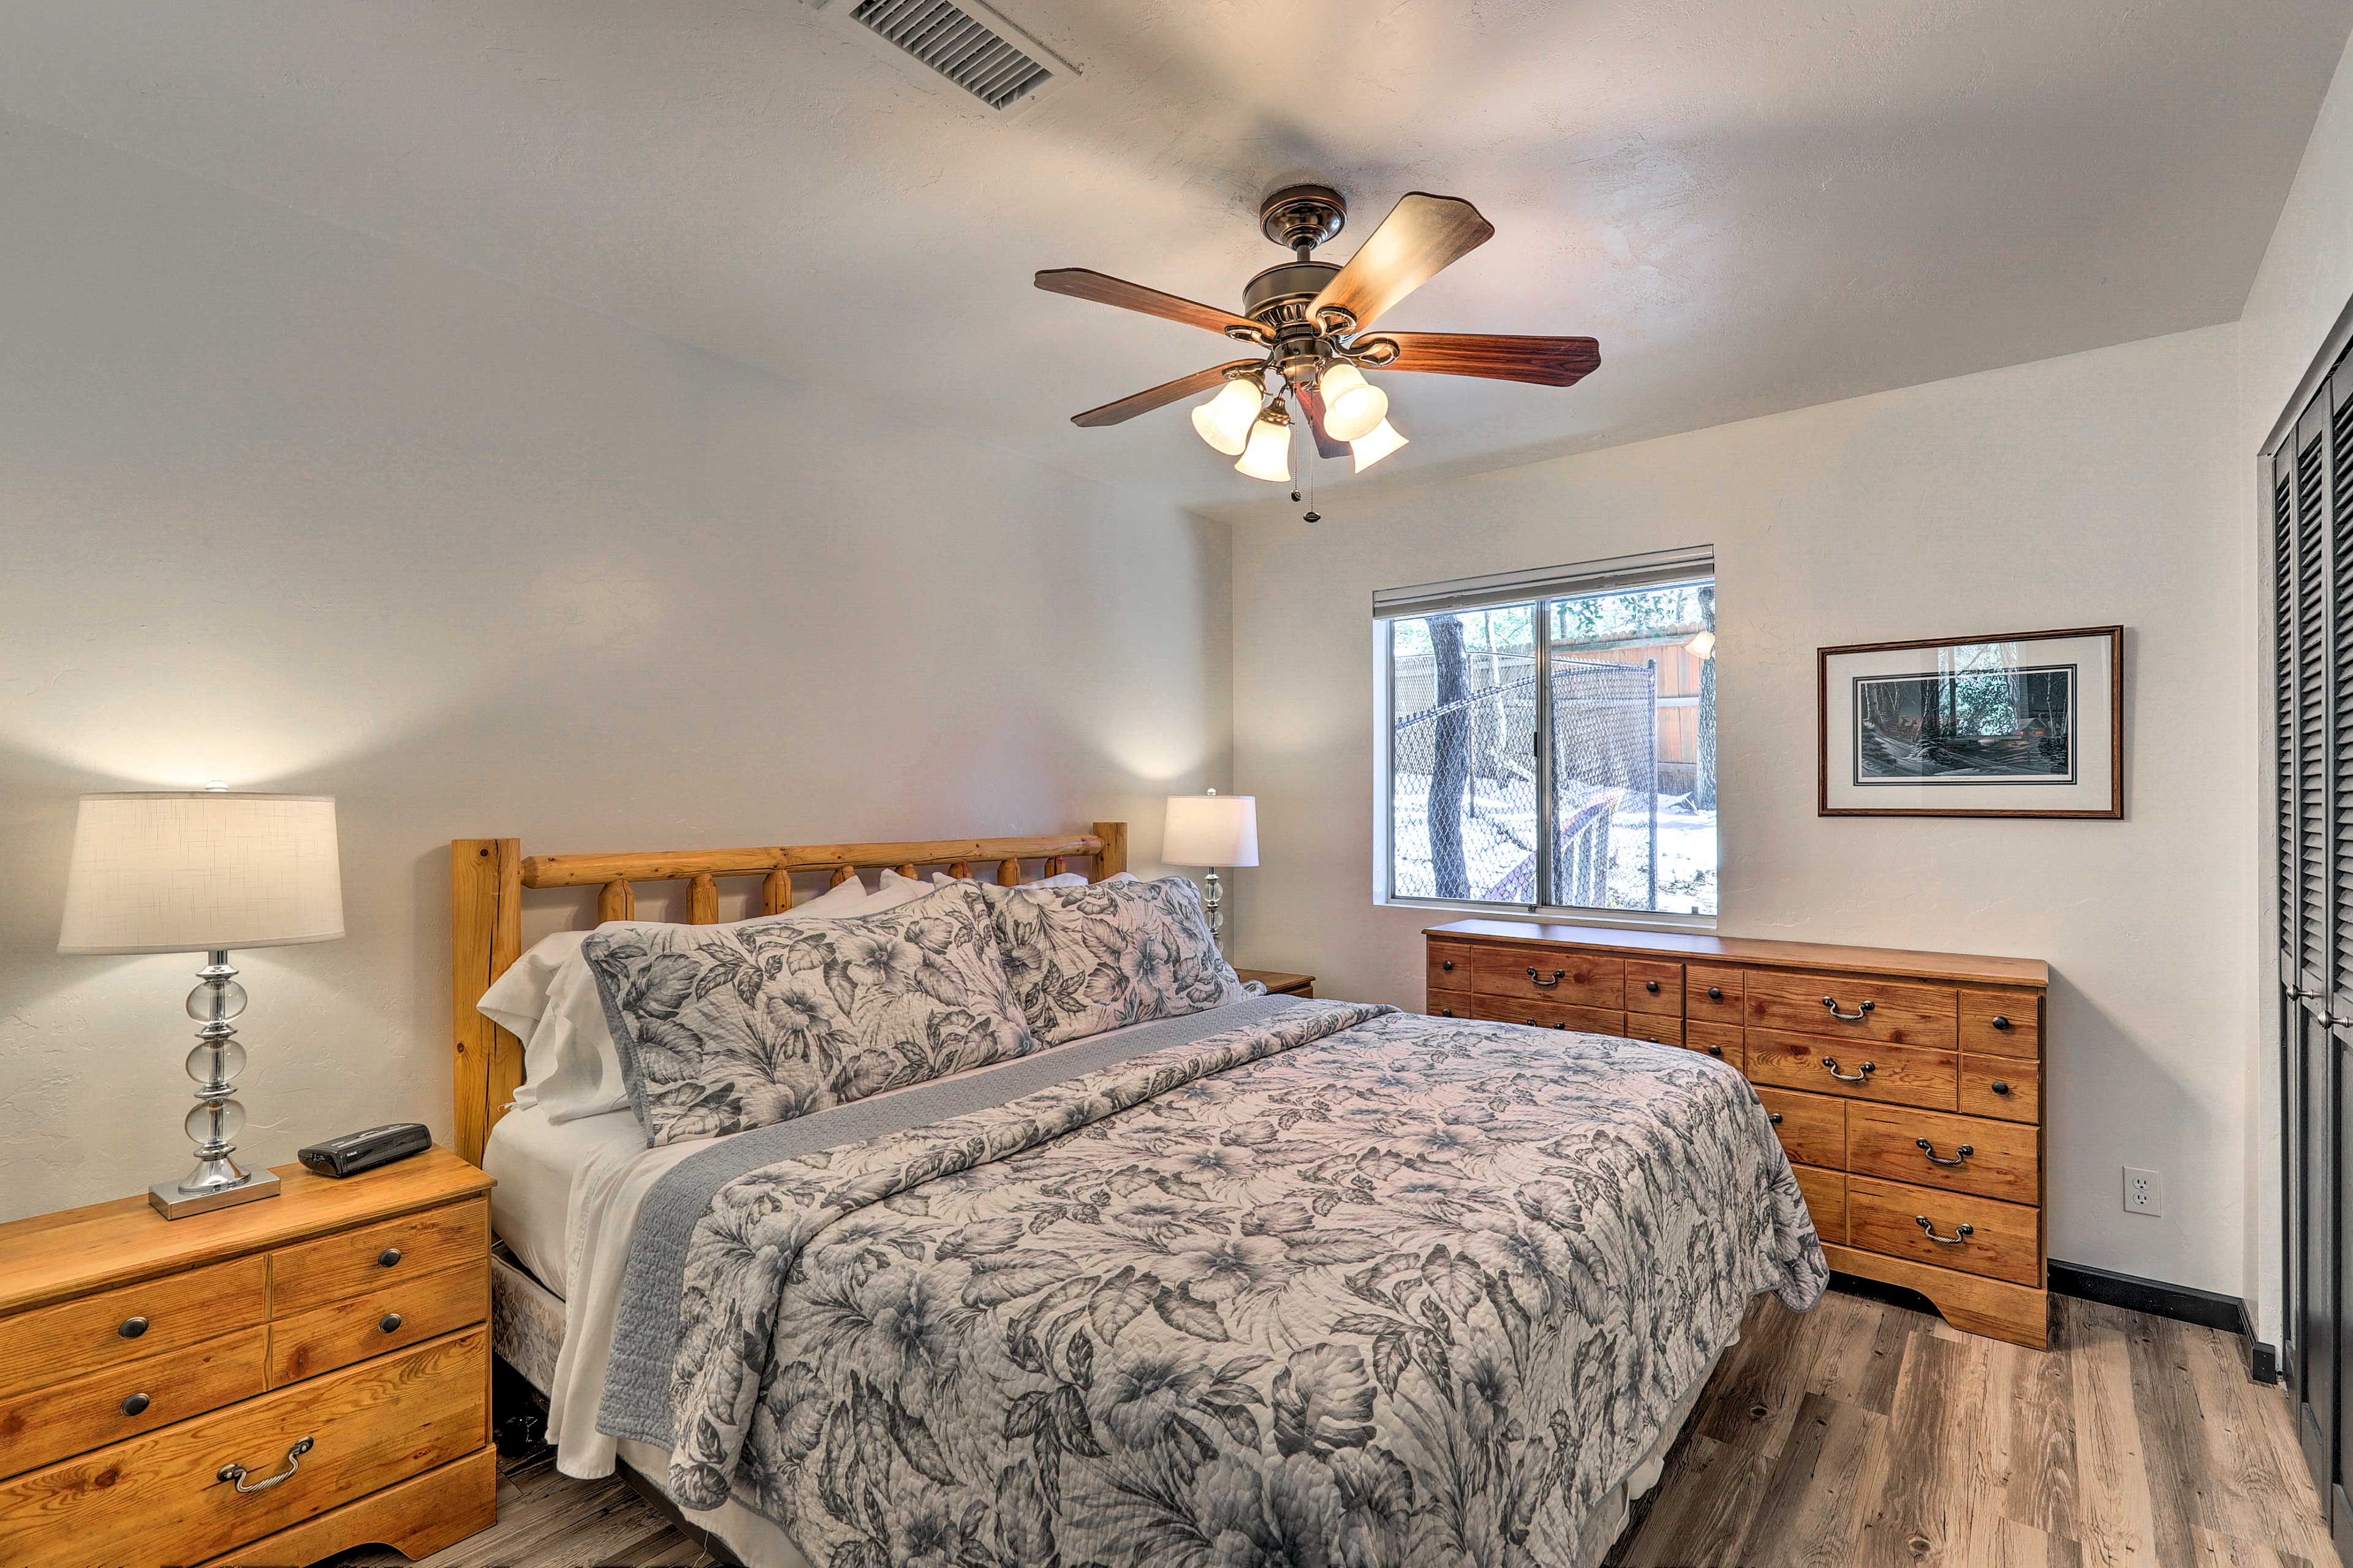 Take solace in the master bedroom with a king bed and dresser.